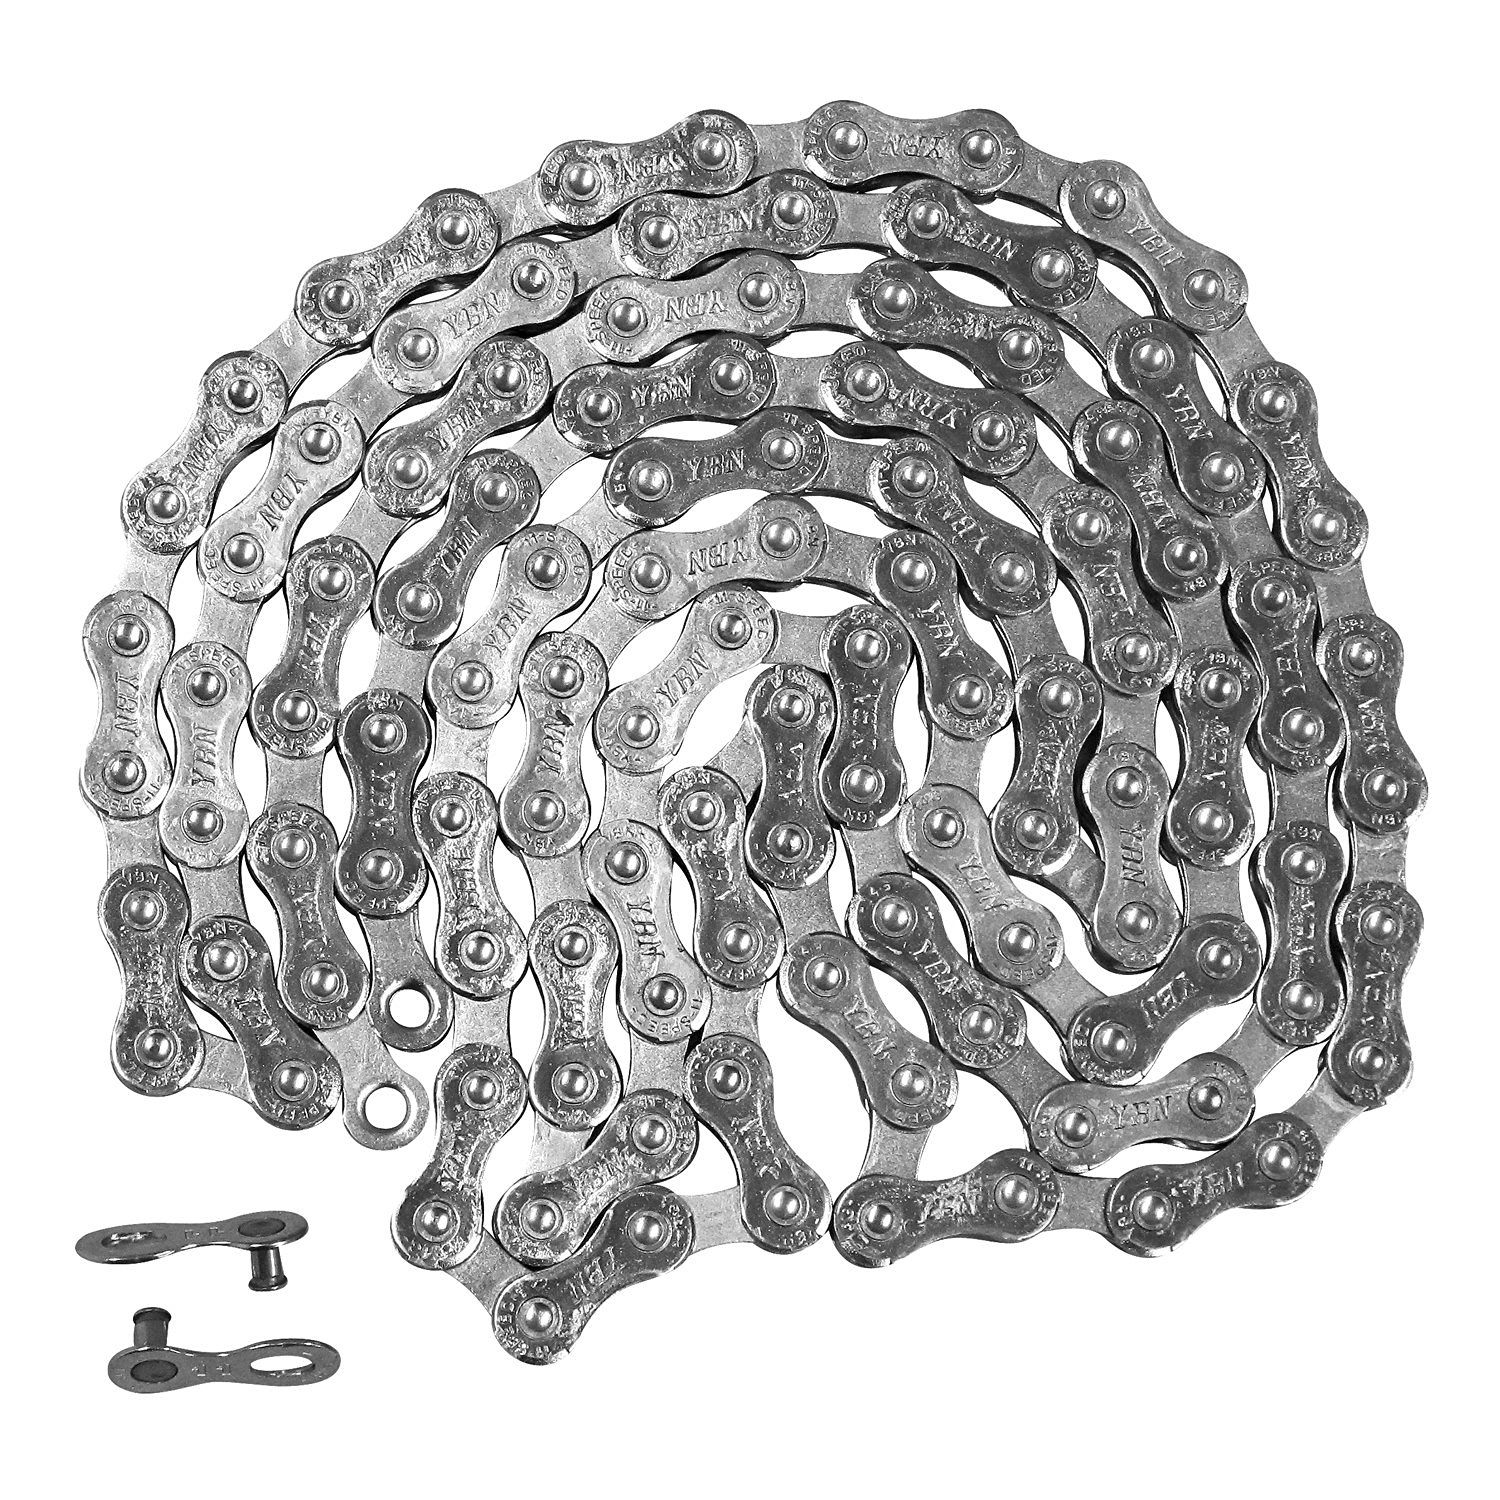 Cheap Sram Powerlink Shimano Chain Find Link 10 Speed Ybn Get Quotations 11 For Campagnolo Or